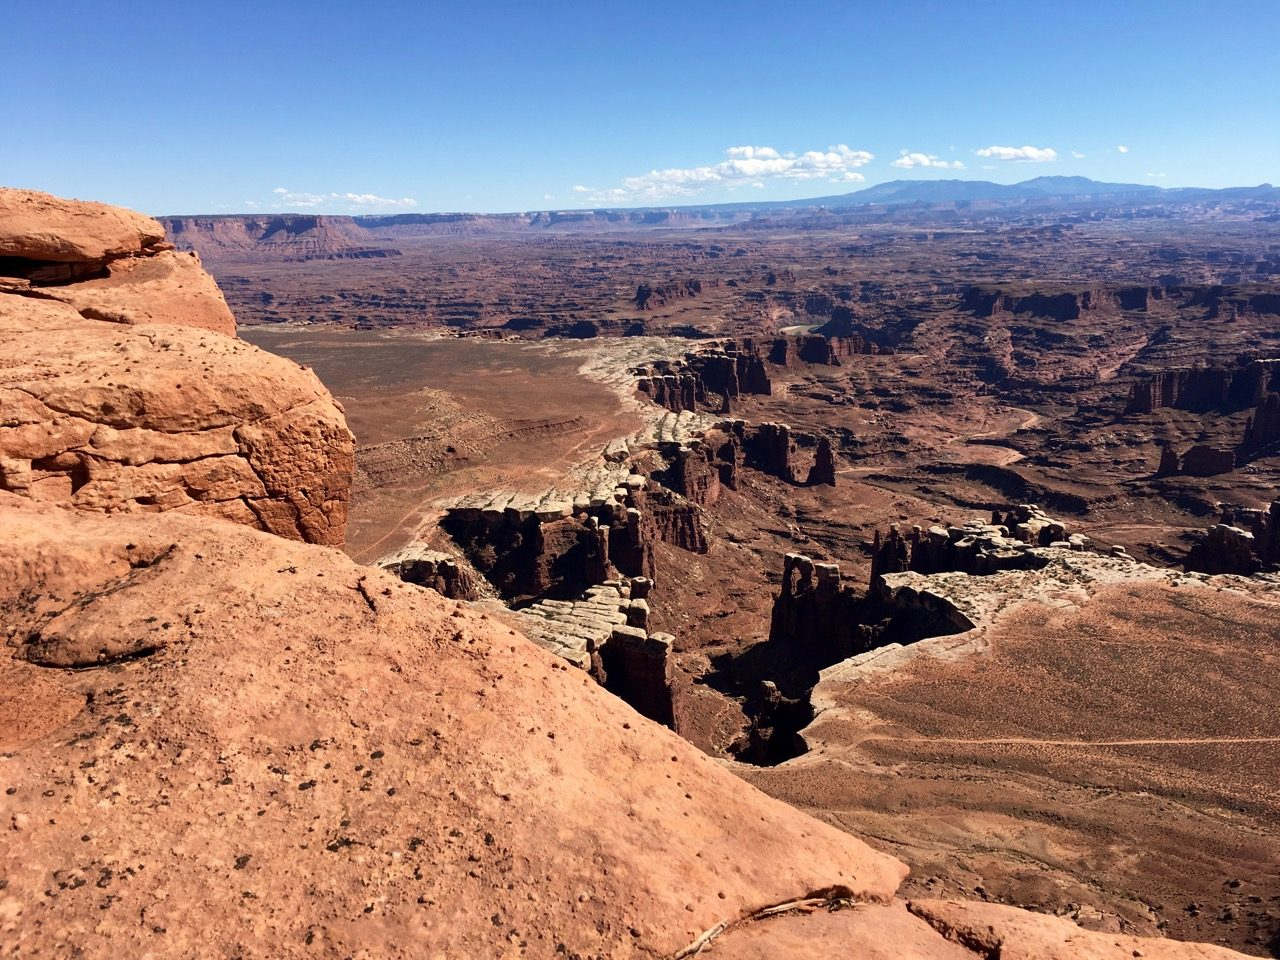 Overlooking the infamous White Rim